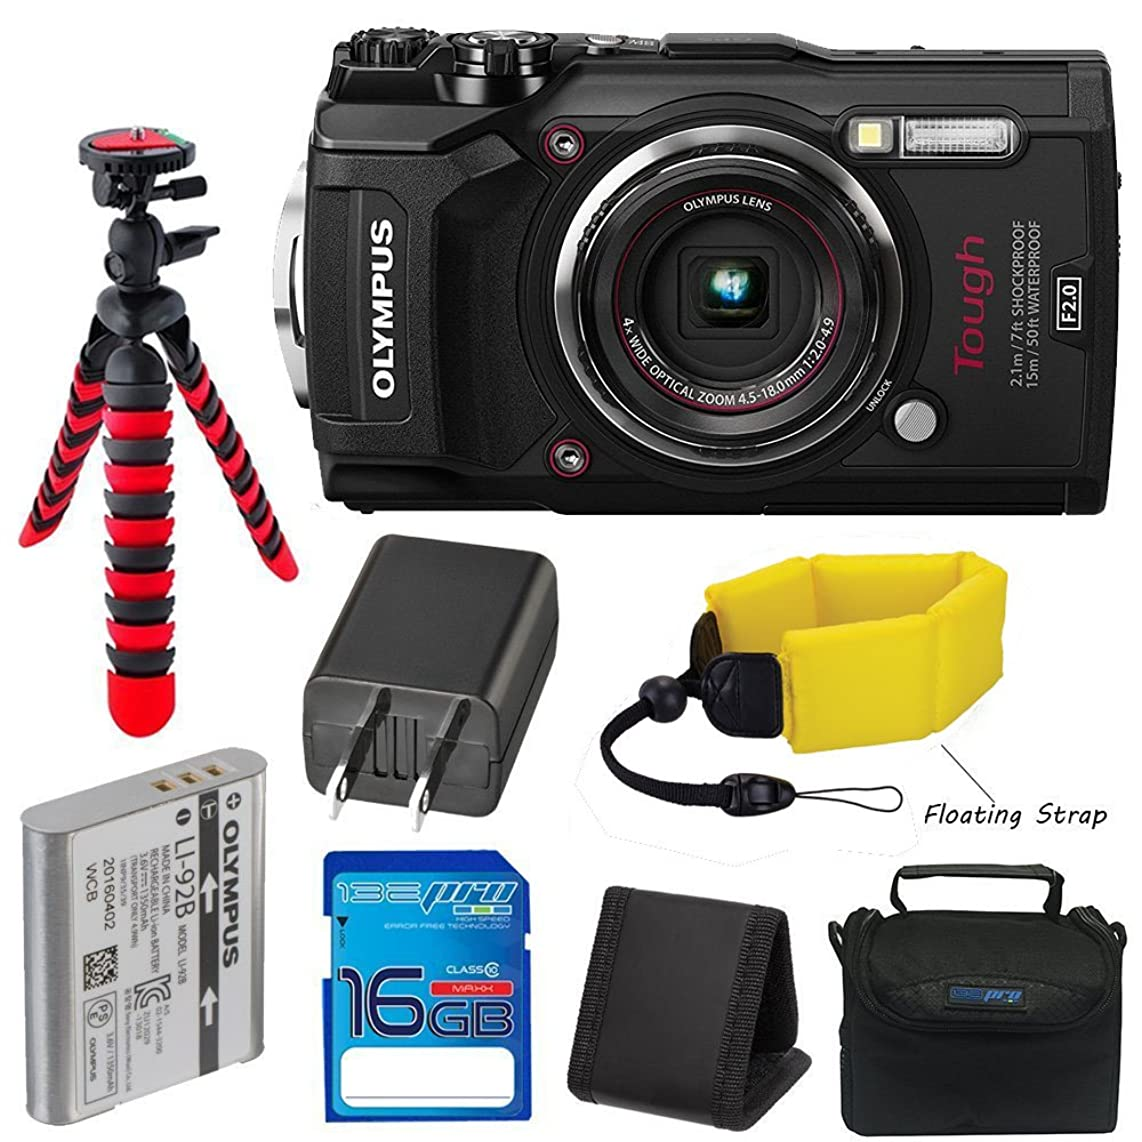 Olympus TG-5 Waterproof Camera with 3-Inch LCD (Black) with I3ePro 16GB Class 10 SD Card, Camera Case and Accessory Bundle